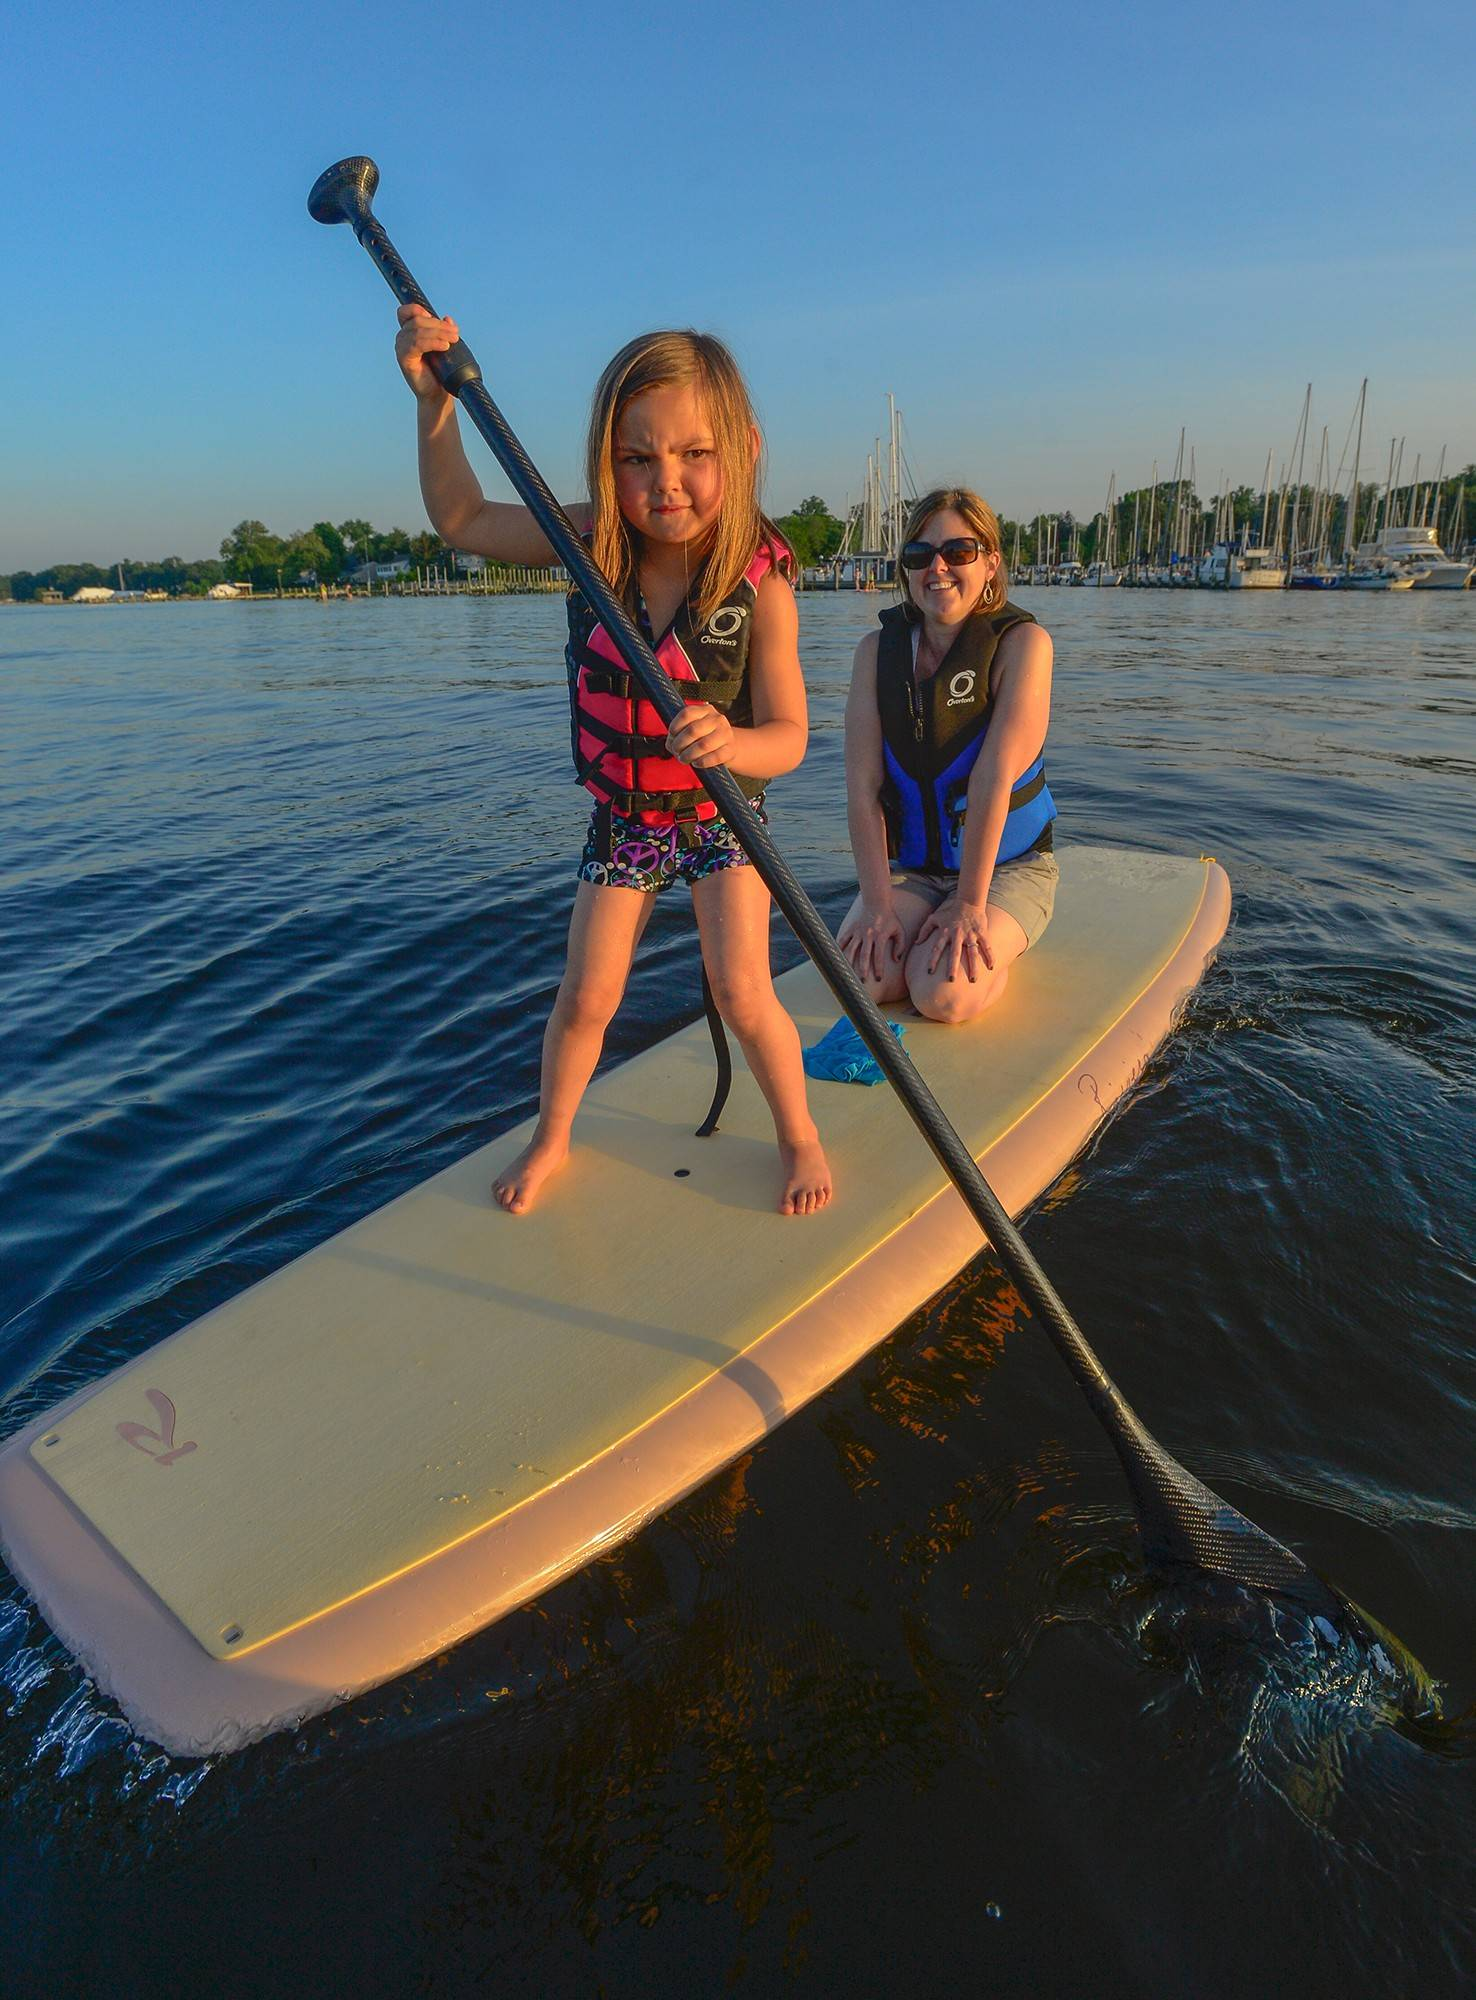 Five-year-old Cate Gelderman gives her mom, Bridget Gelderman, a break from paddling during a free community stand-up paddle class with adults and kids on the Magothy River near Arnold, Md.